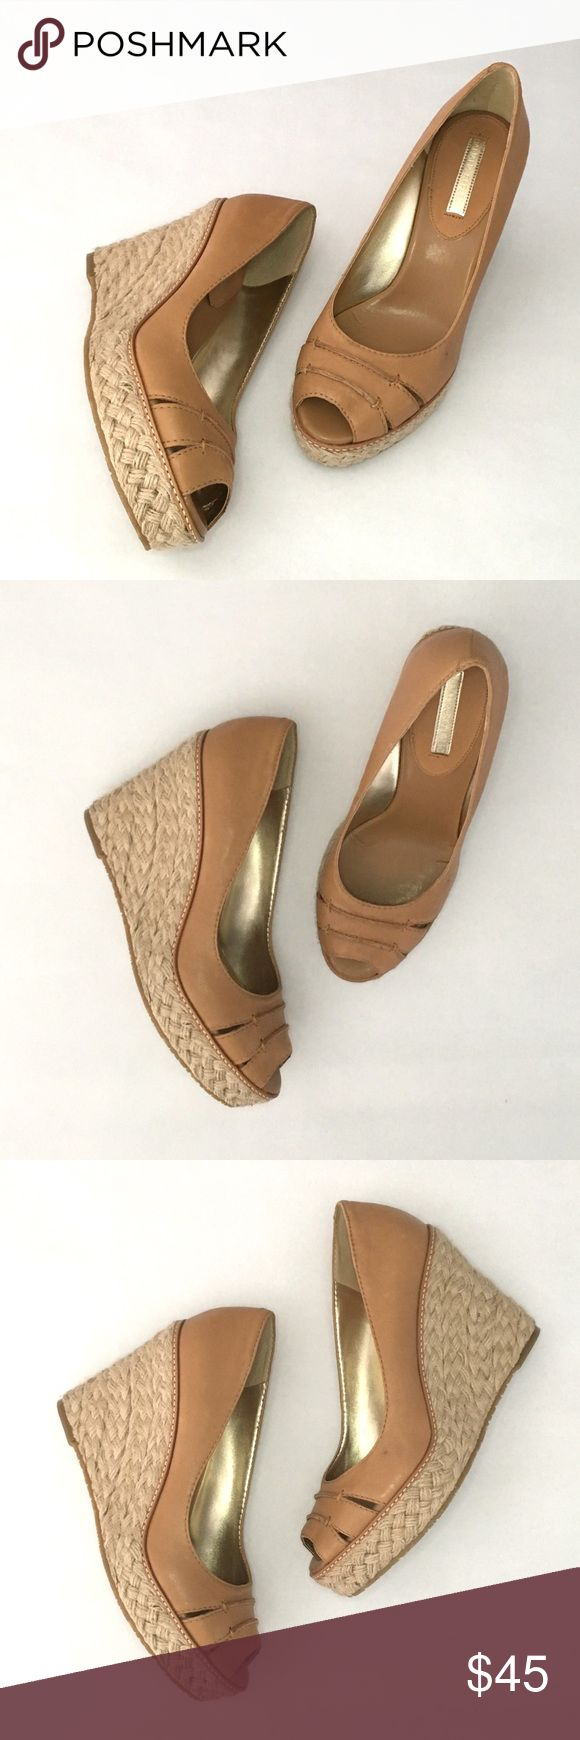 """Banana Republic Dylan jute wedges, NIB Tan leather paired with jute, NIB, 4 1/2"""" heel with a 1 1/4"""" platform.  These are brand new, unworn with box.  Box has some damage.  There is a small manufacturing defect on the front side on left shoe as shown in images.  Low vamp. Banana Republic Shoes Wedges"""